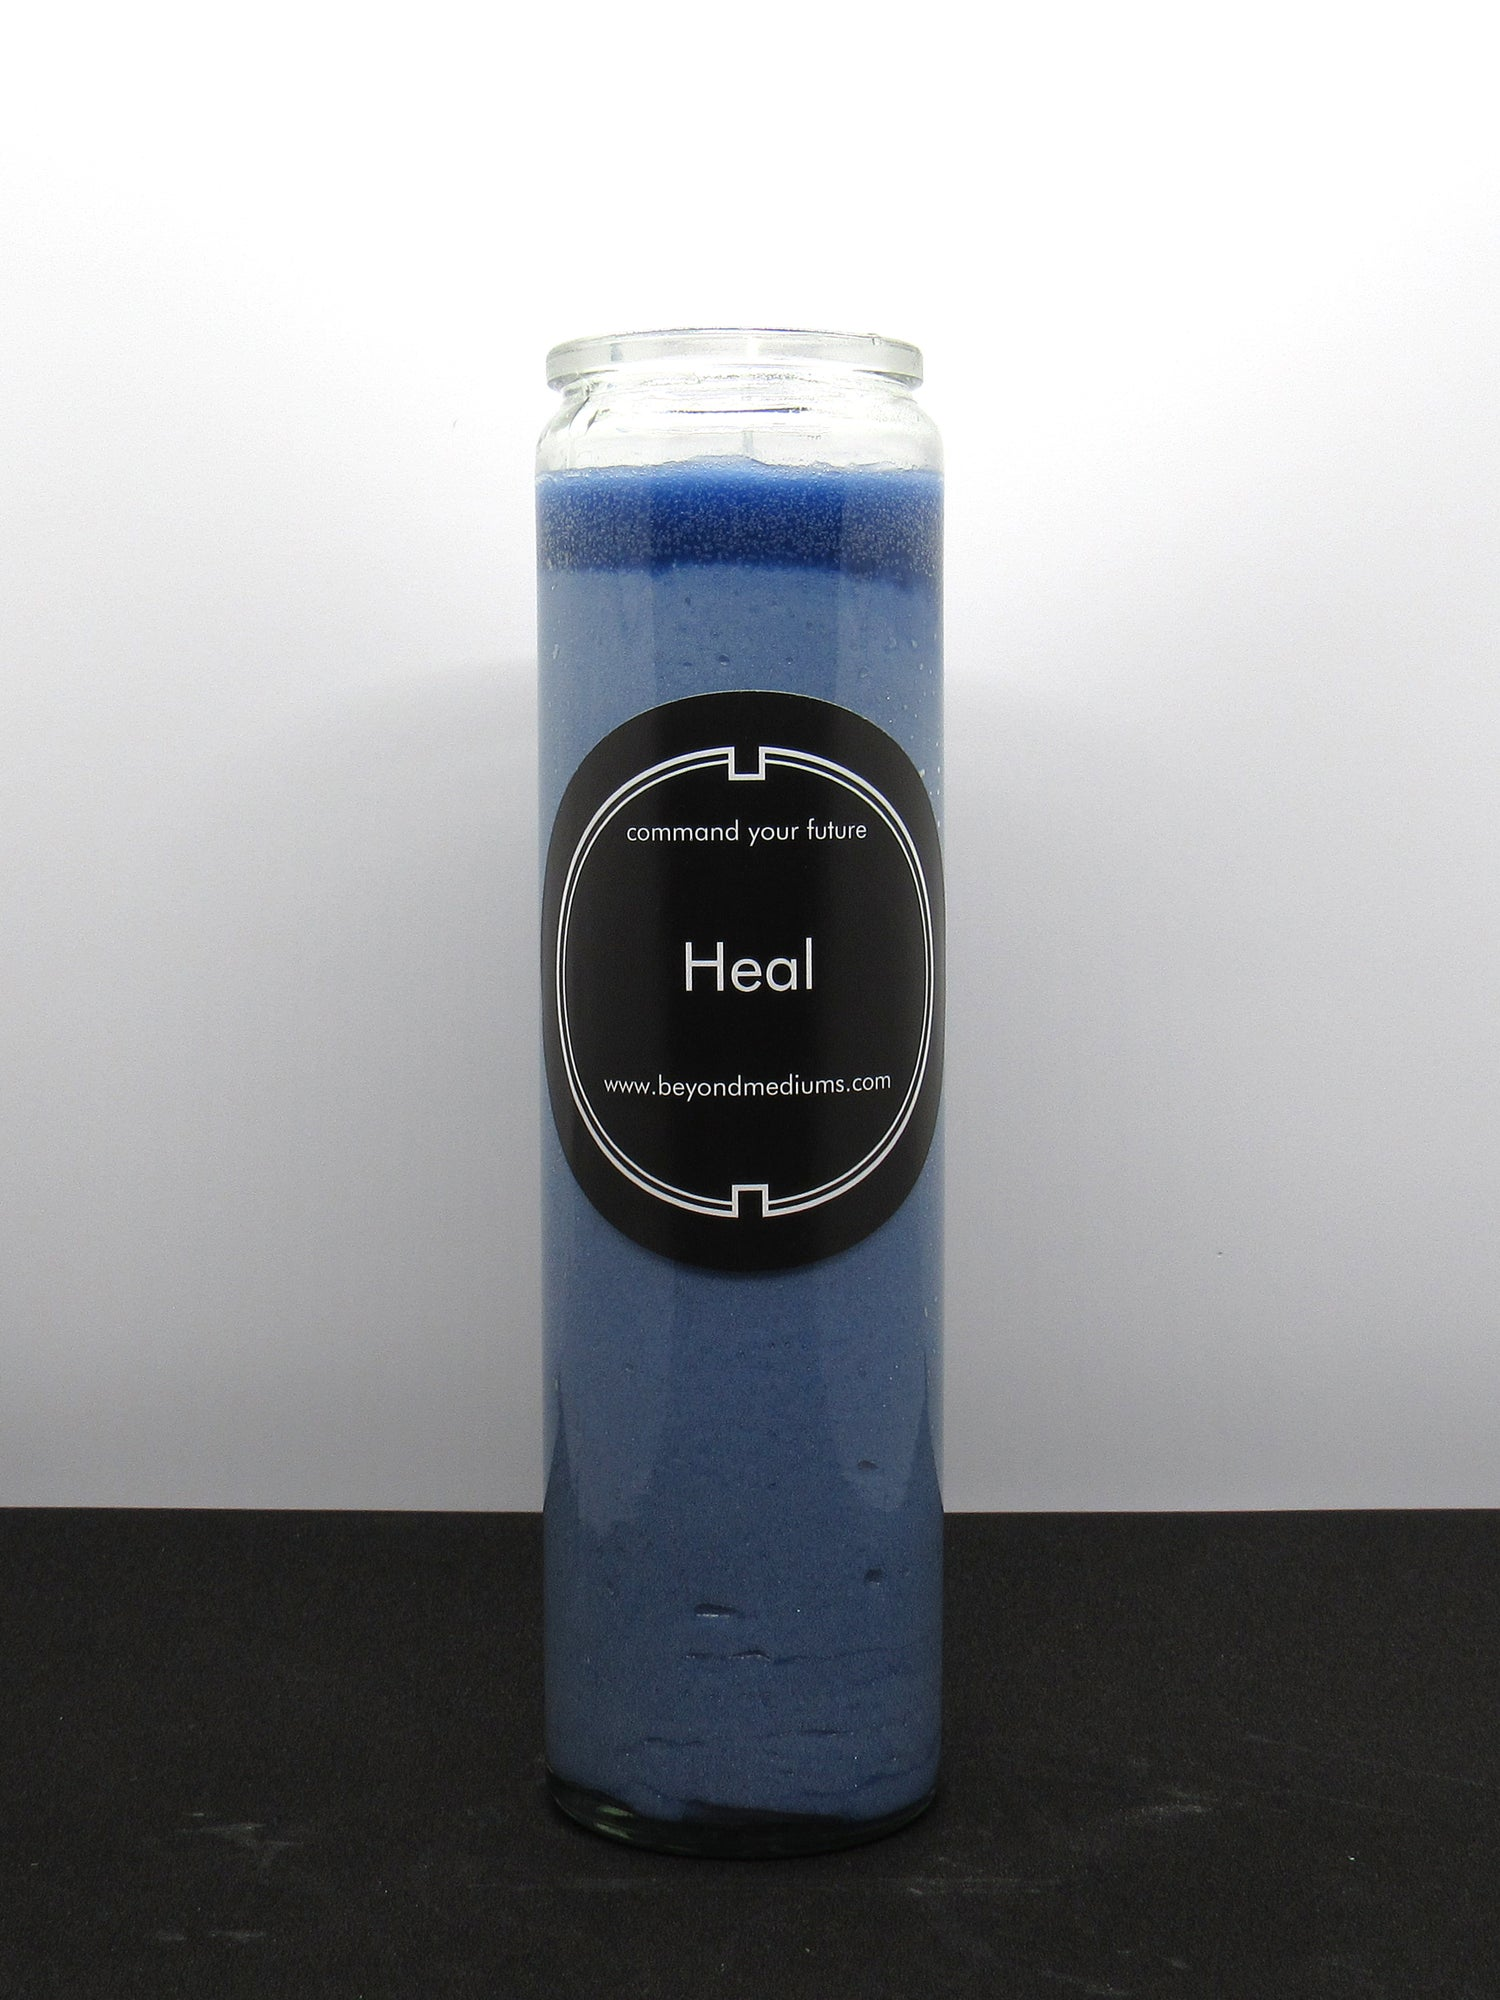 Image of Heal Candle